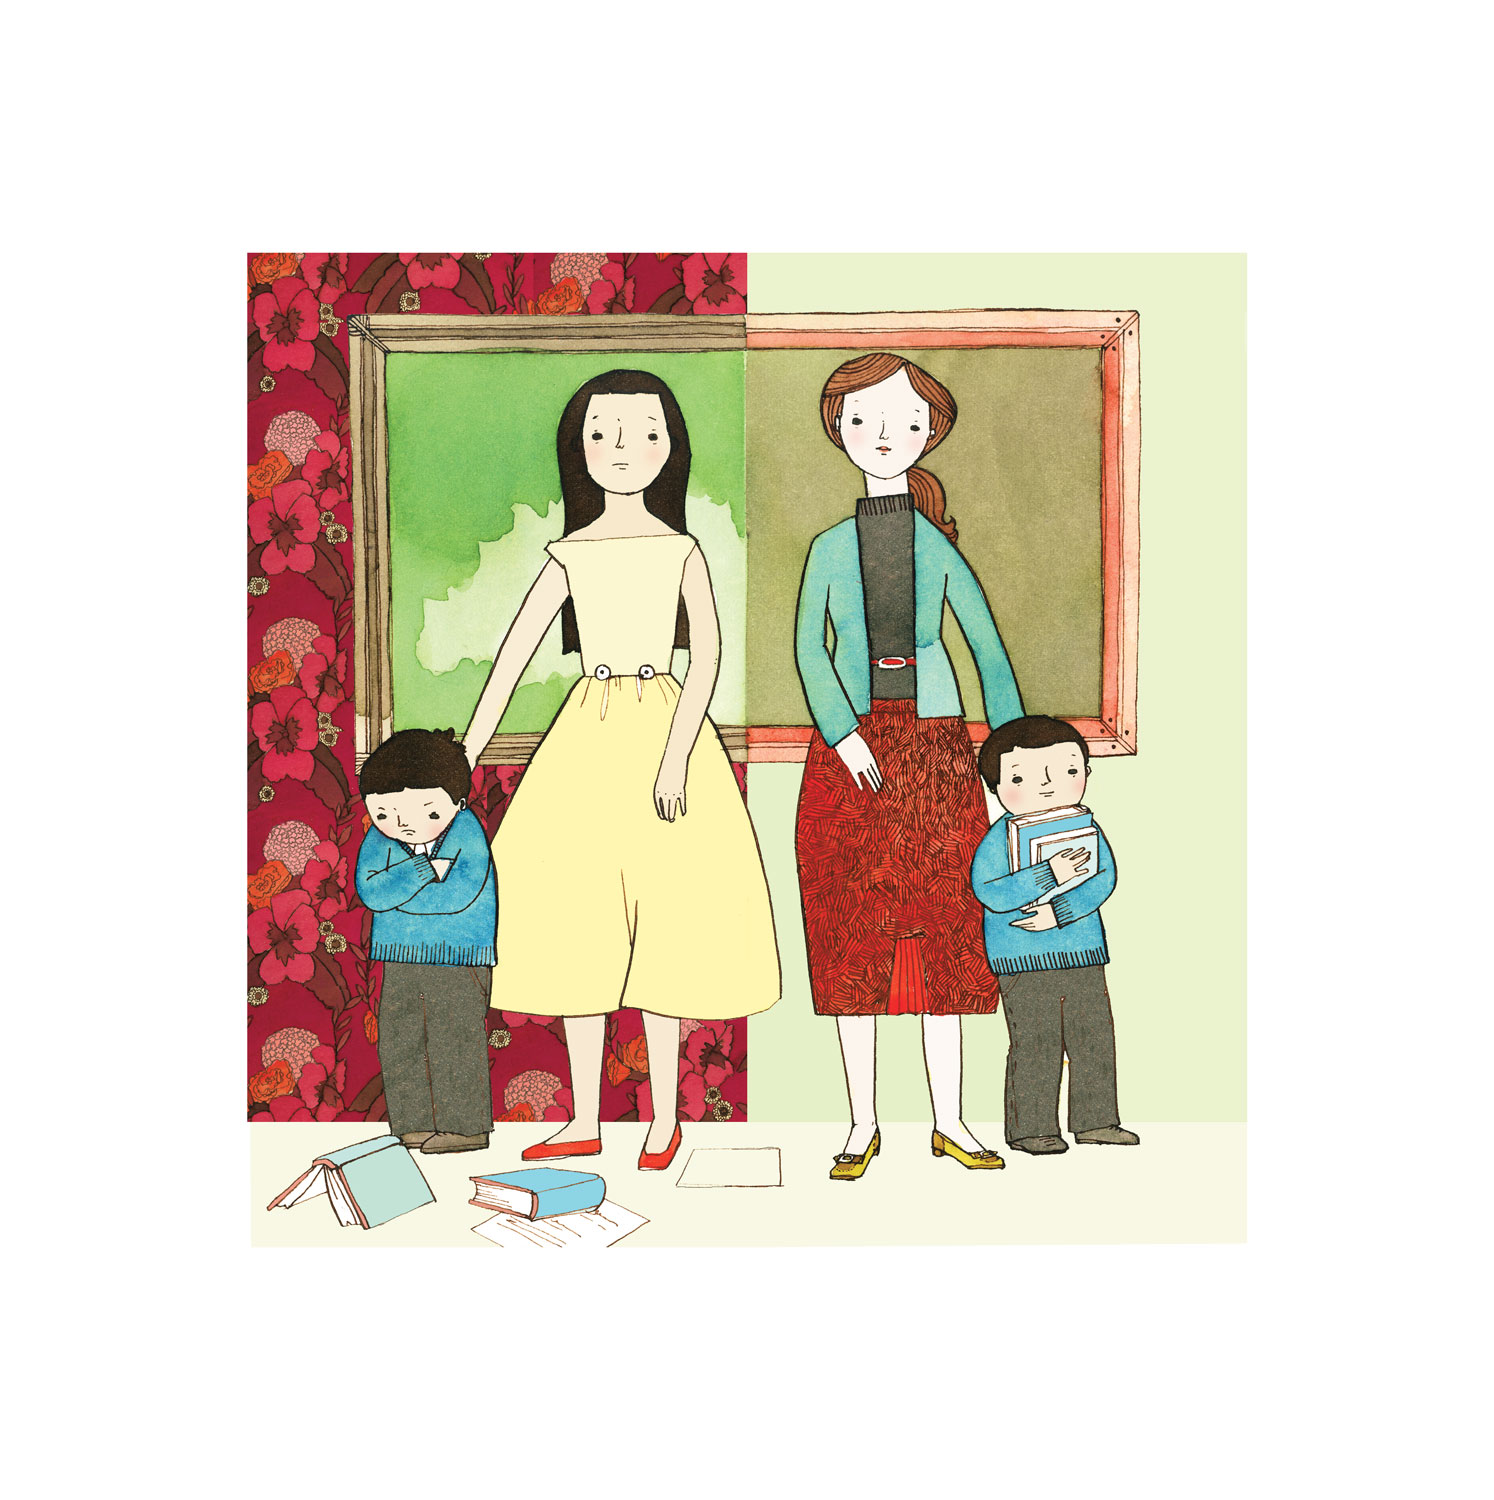 Illustration of a mother, a teacher, and children